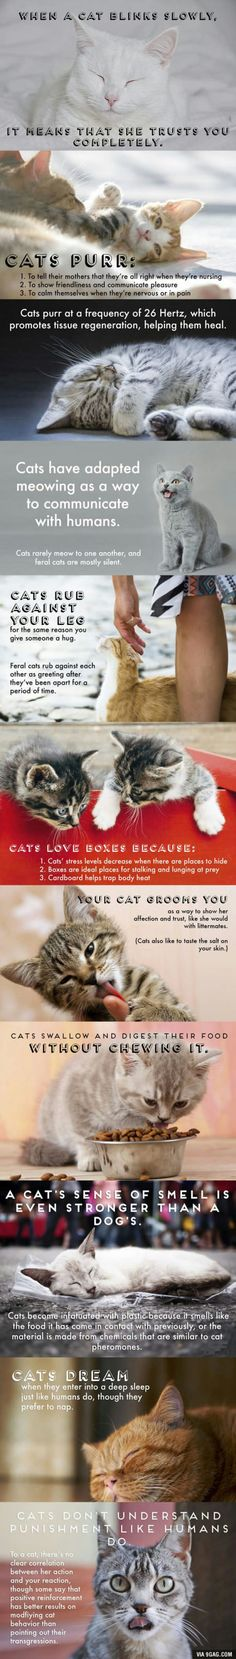 Facts about cats! Part 2